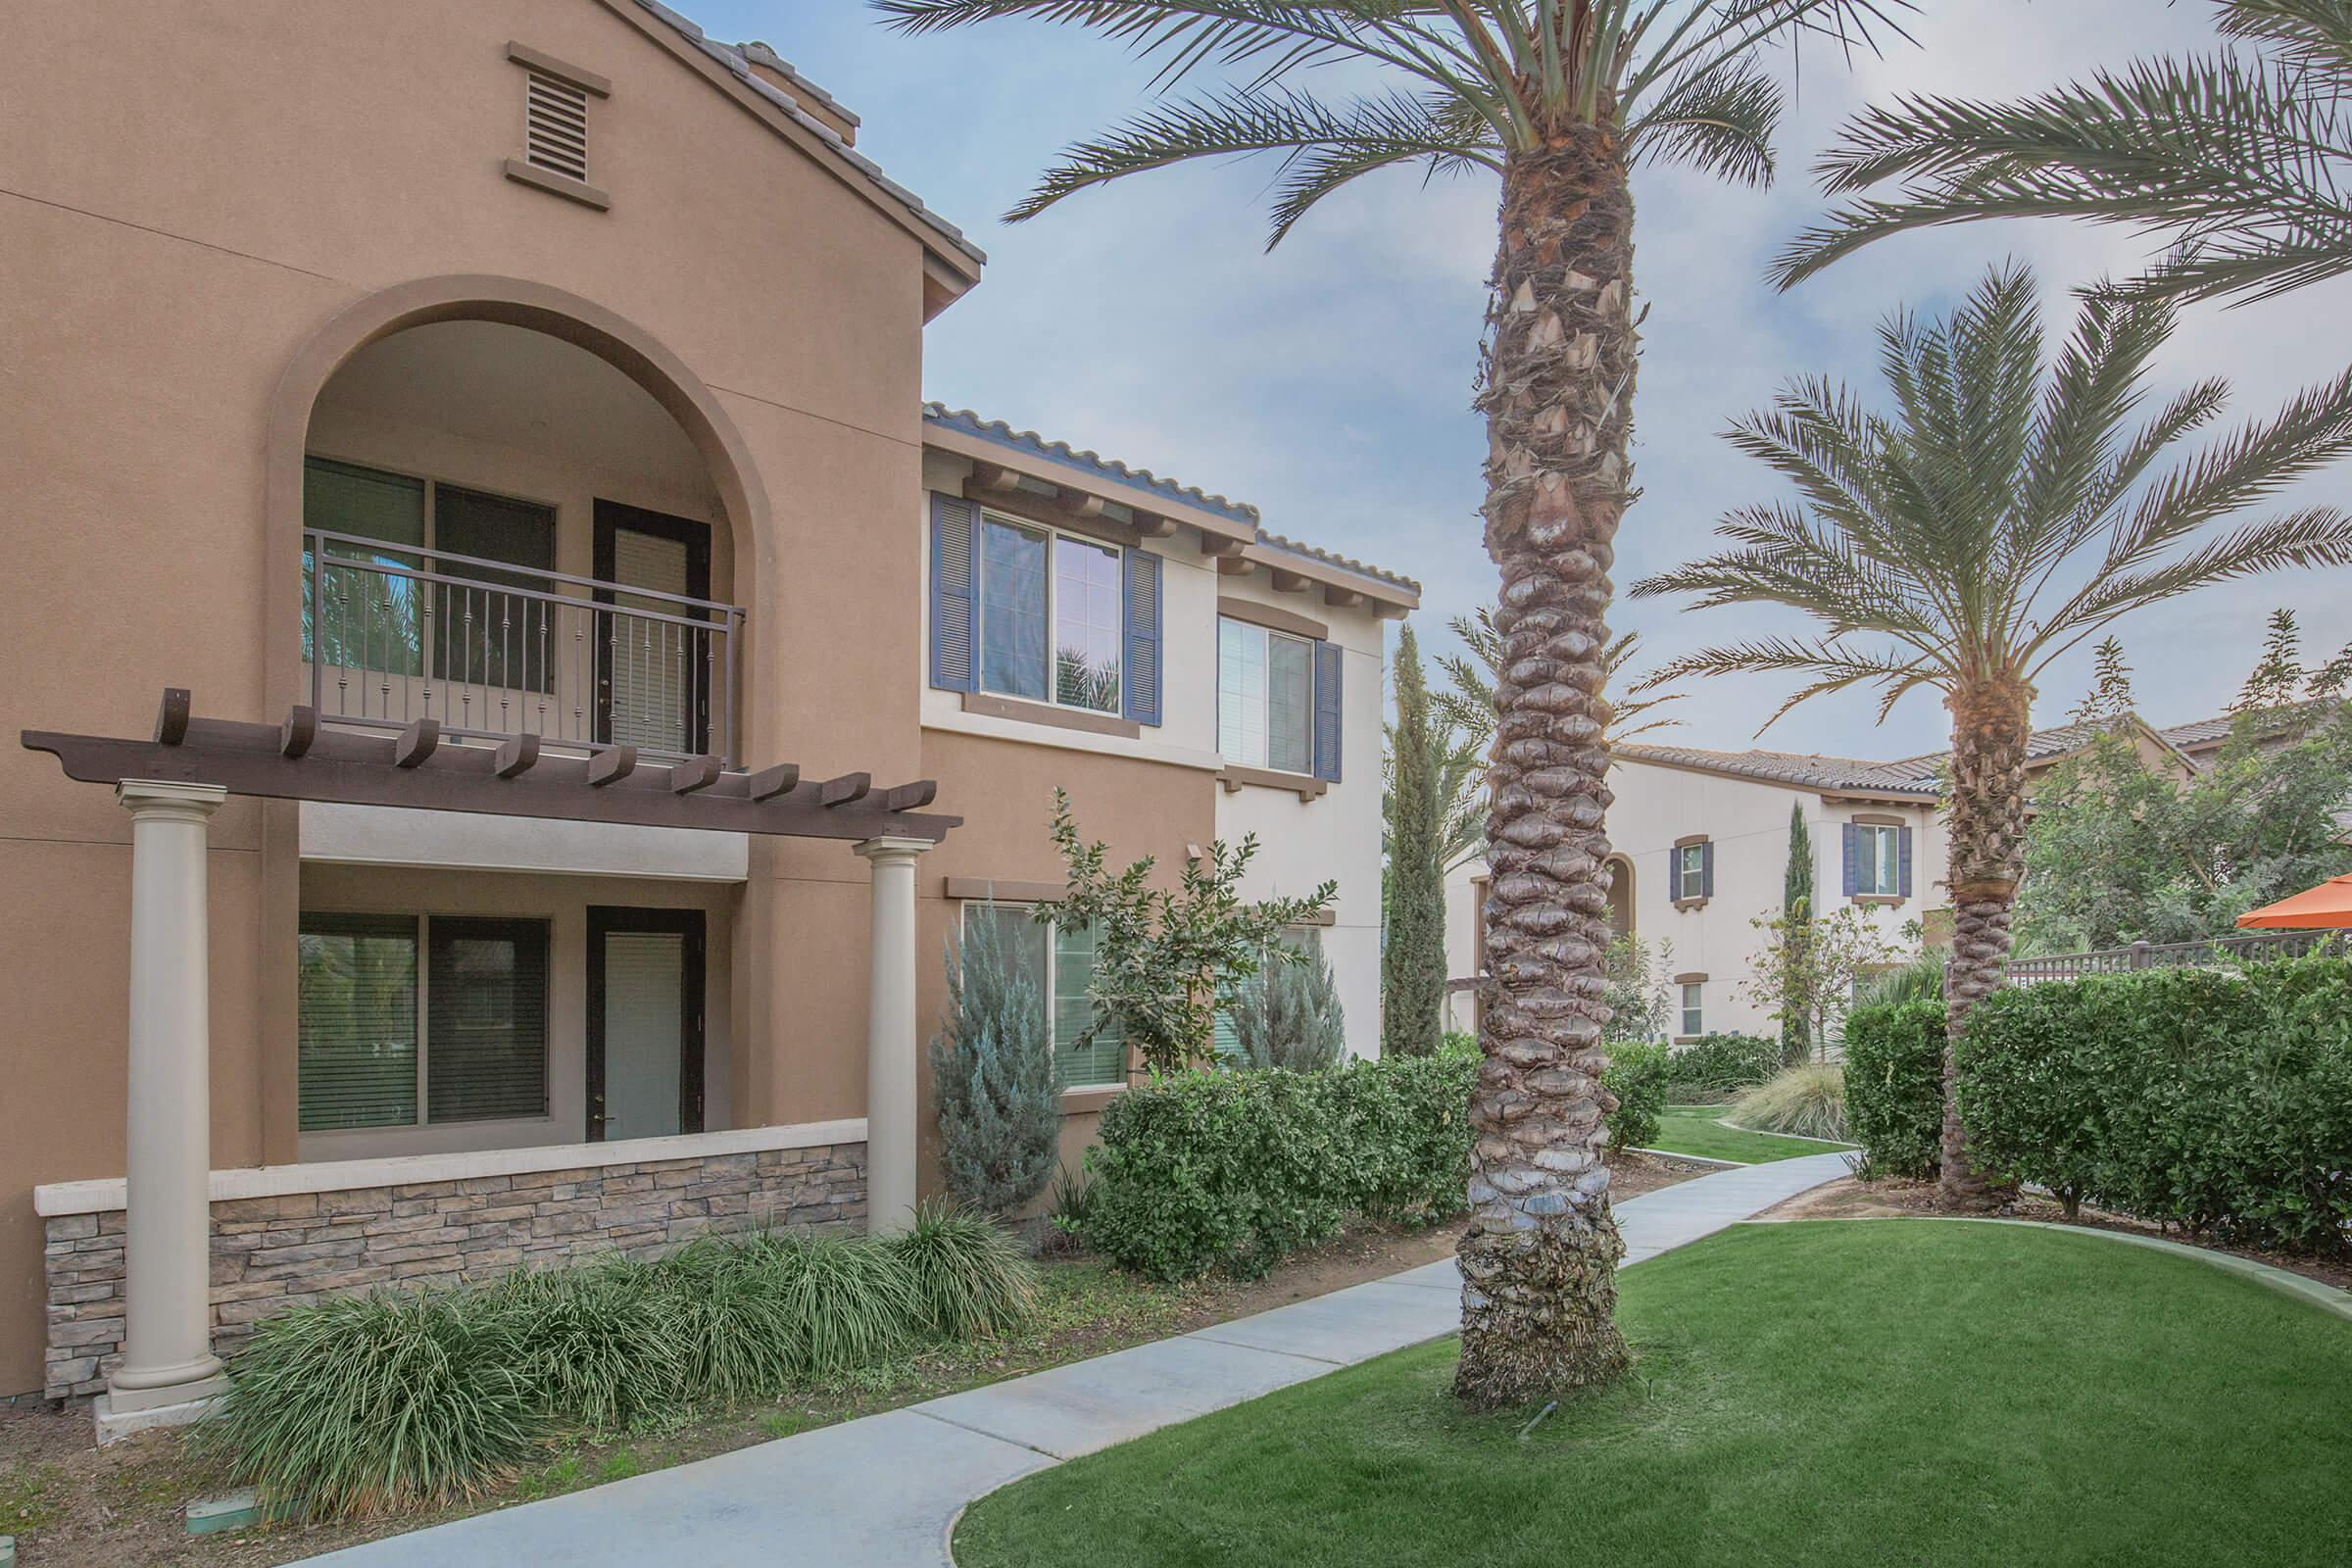 The Retreat at Riverlakes community building with palms trees in front